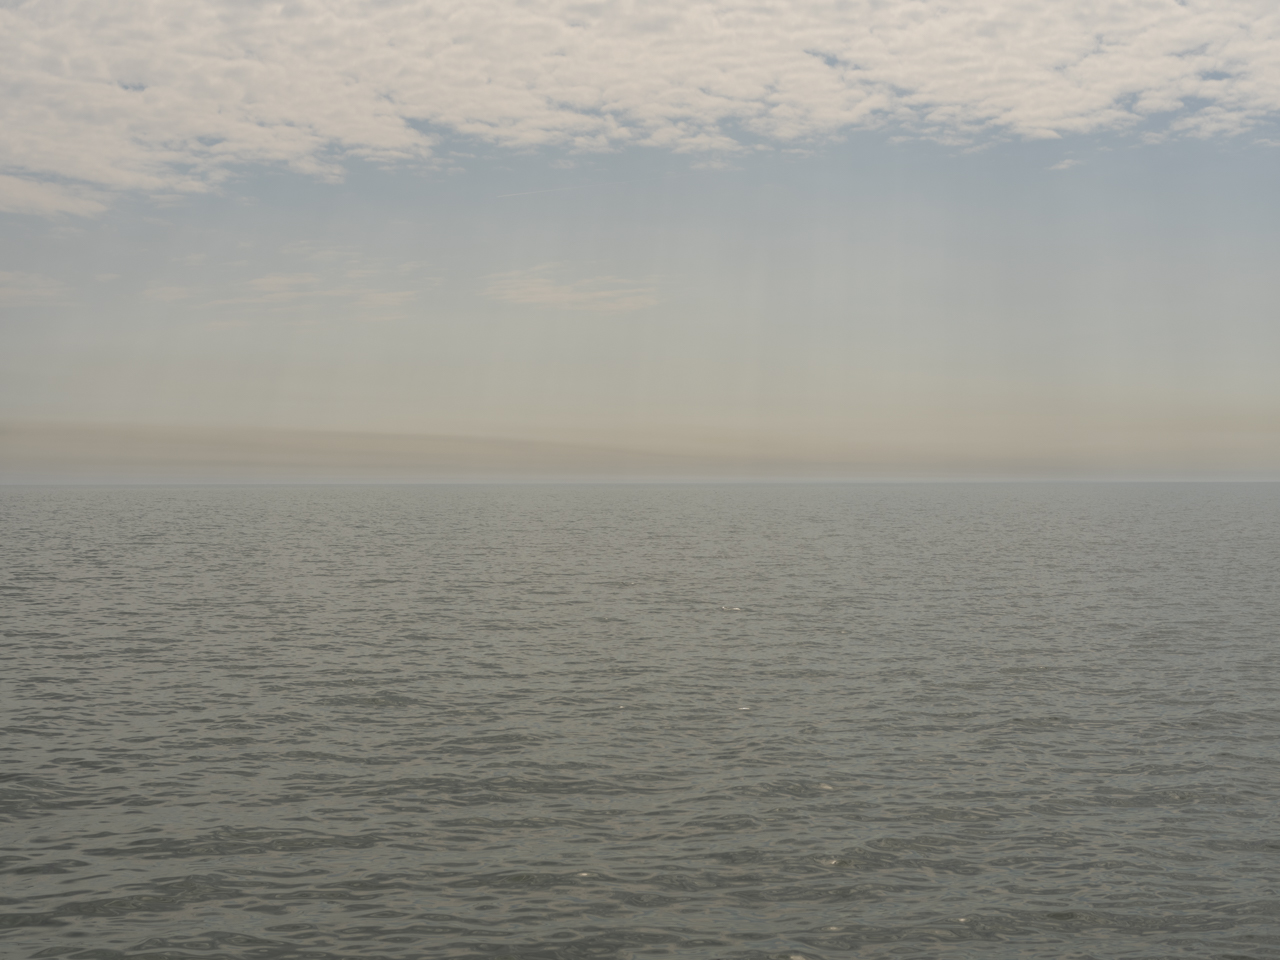 a green gray day on Lake Michigan with brown clouds in a hazy blue sky